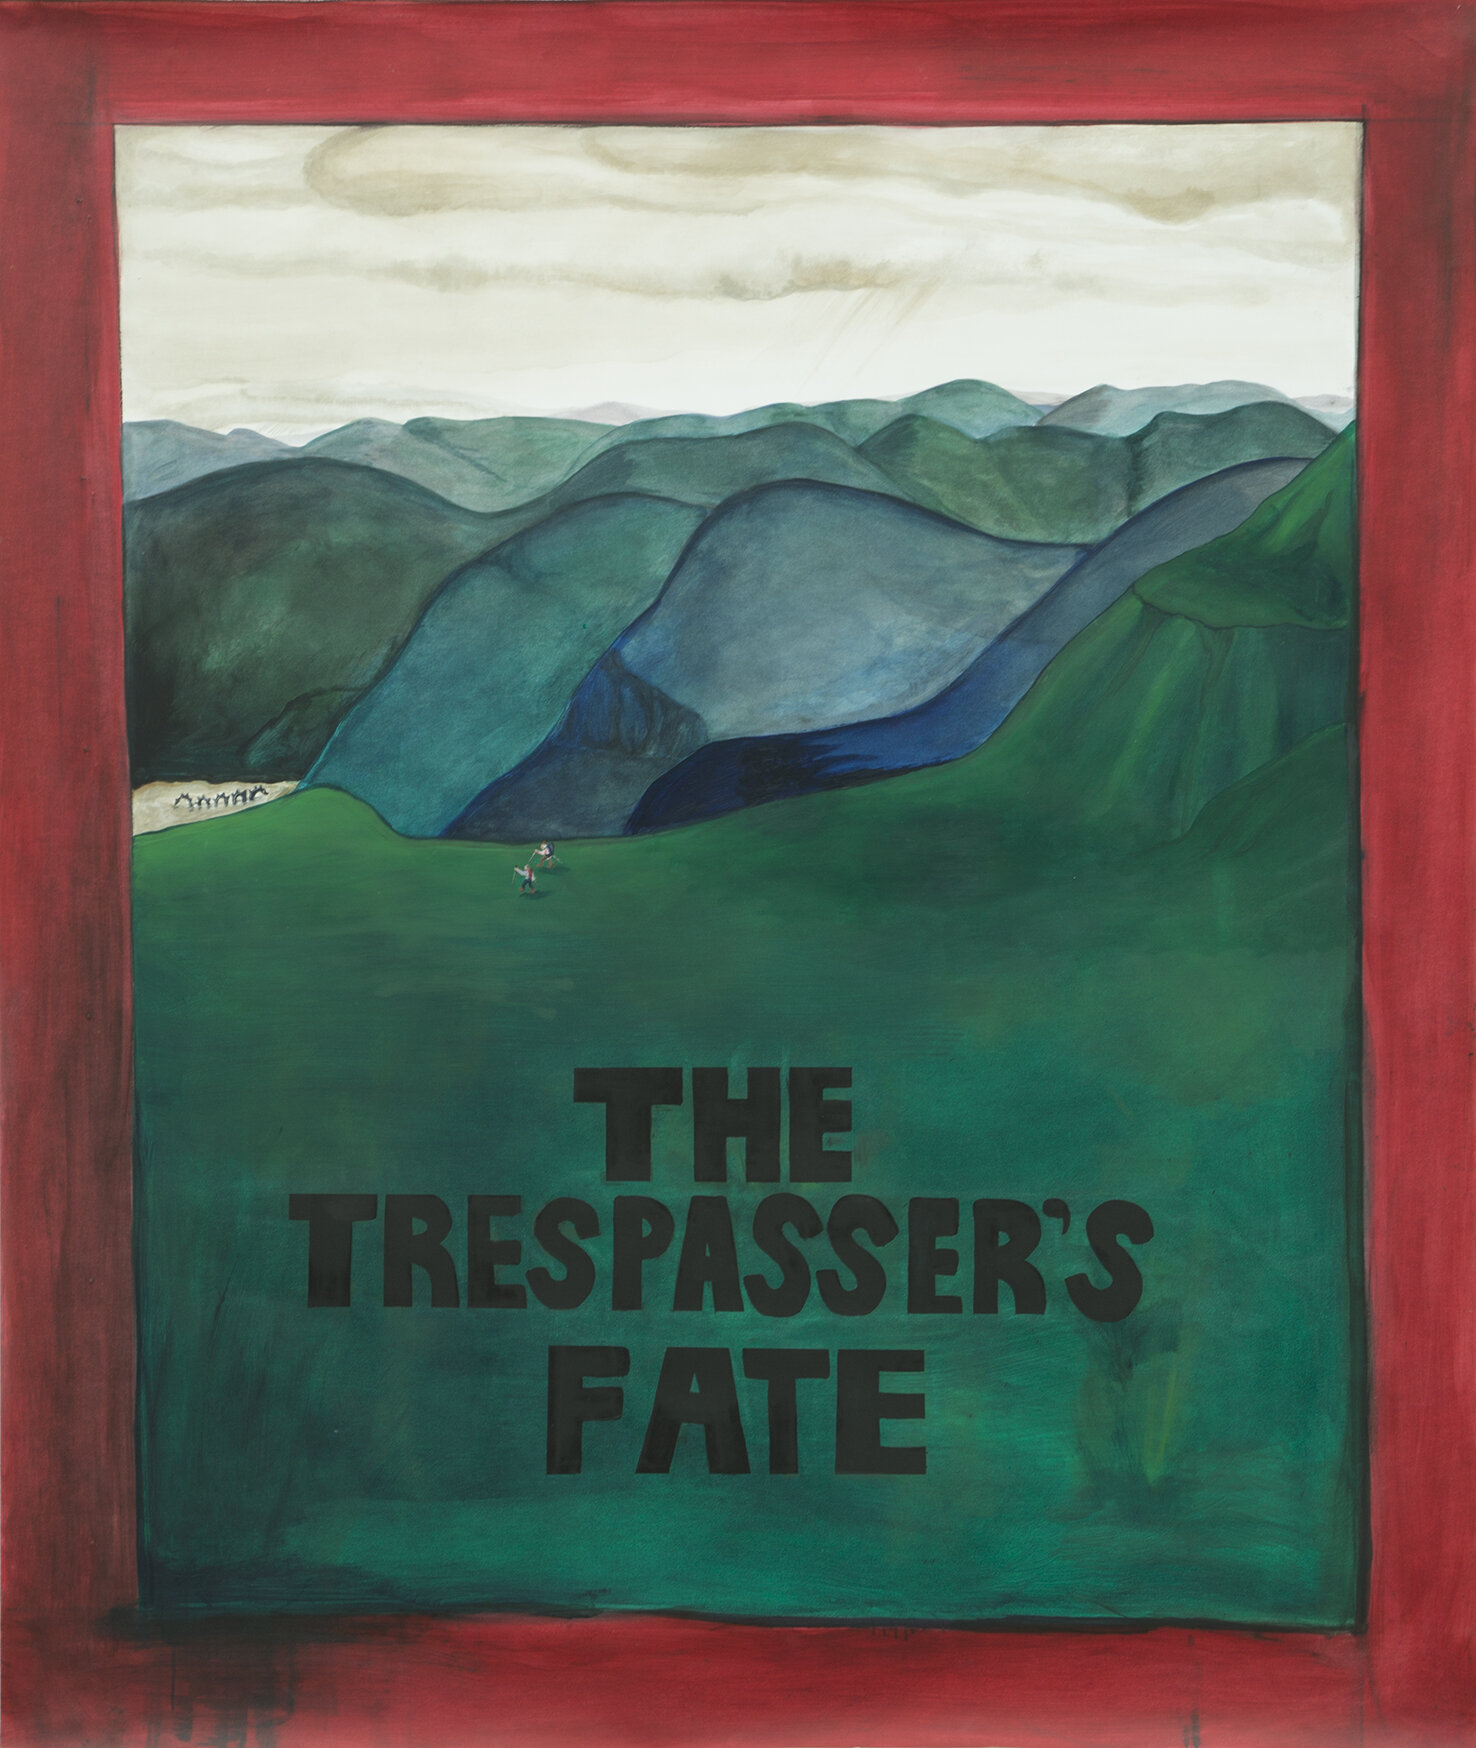 Postcard of The Trespasser's Fate.jpg